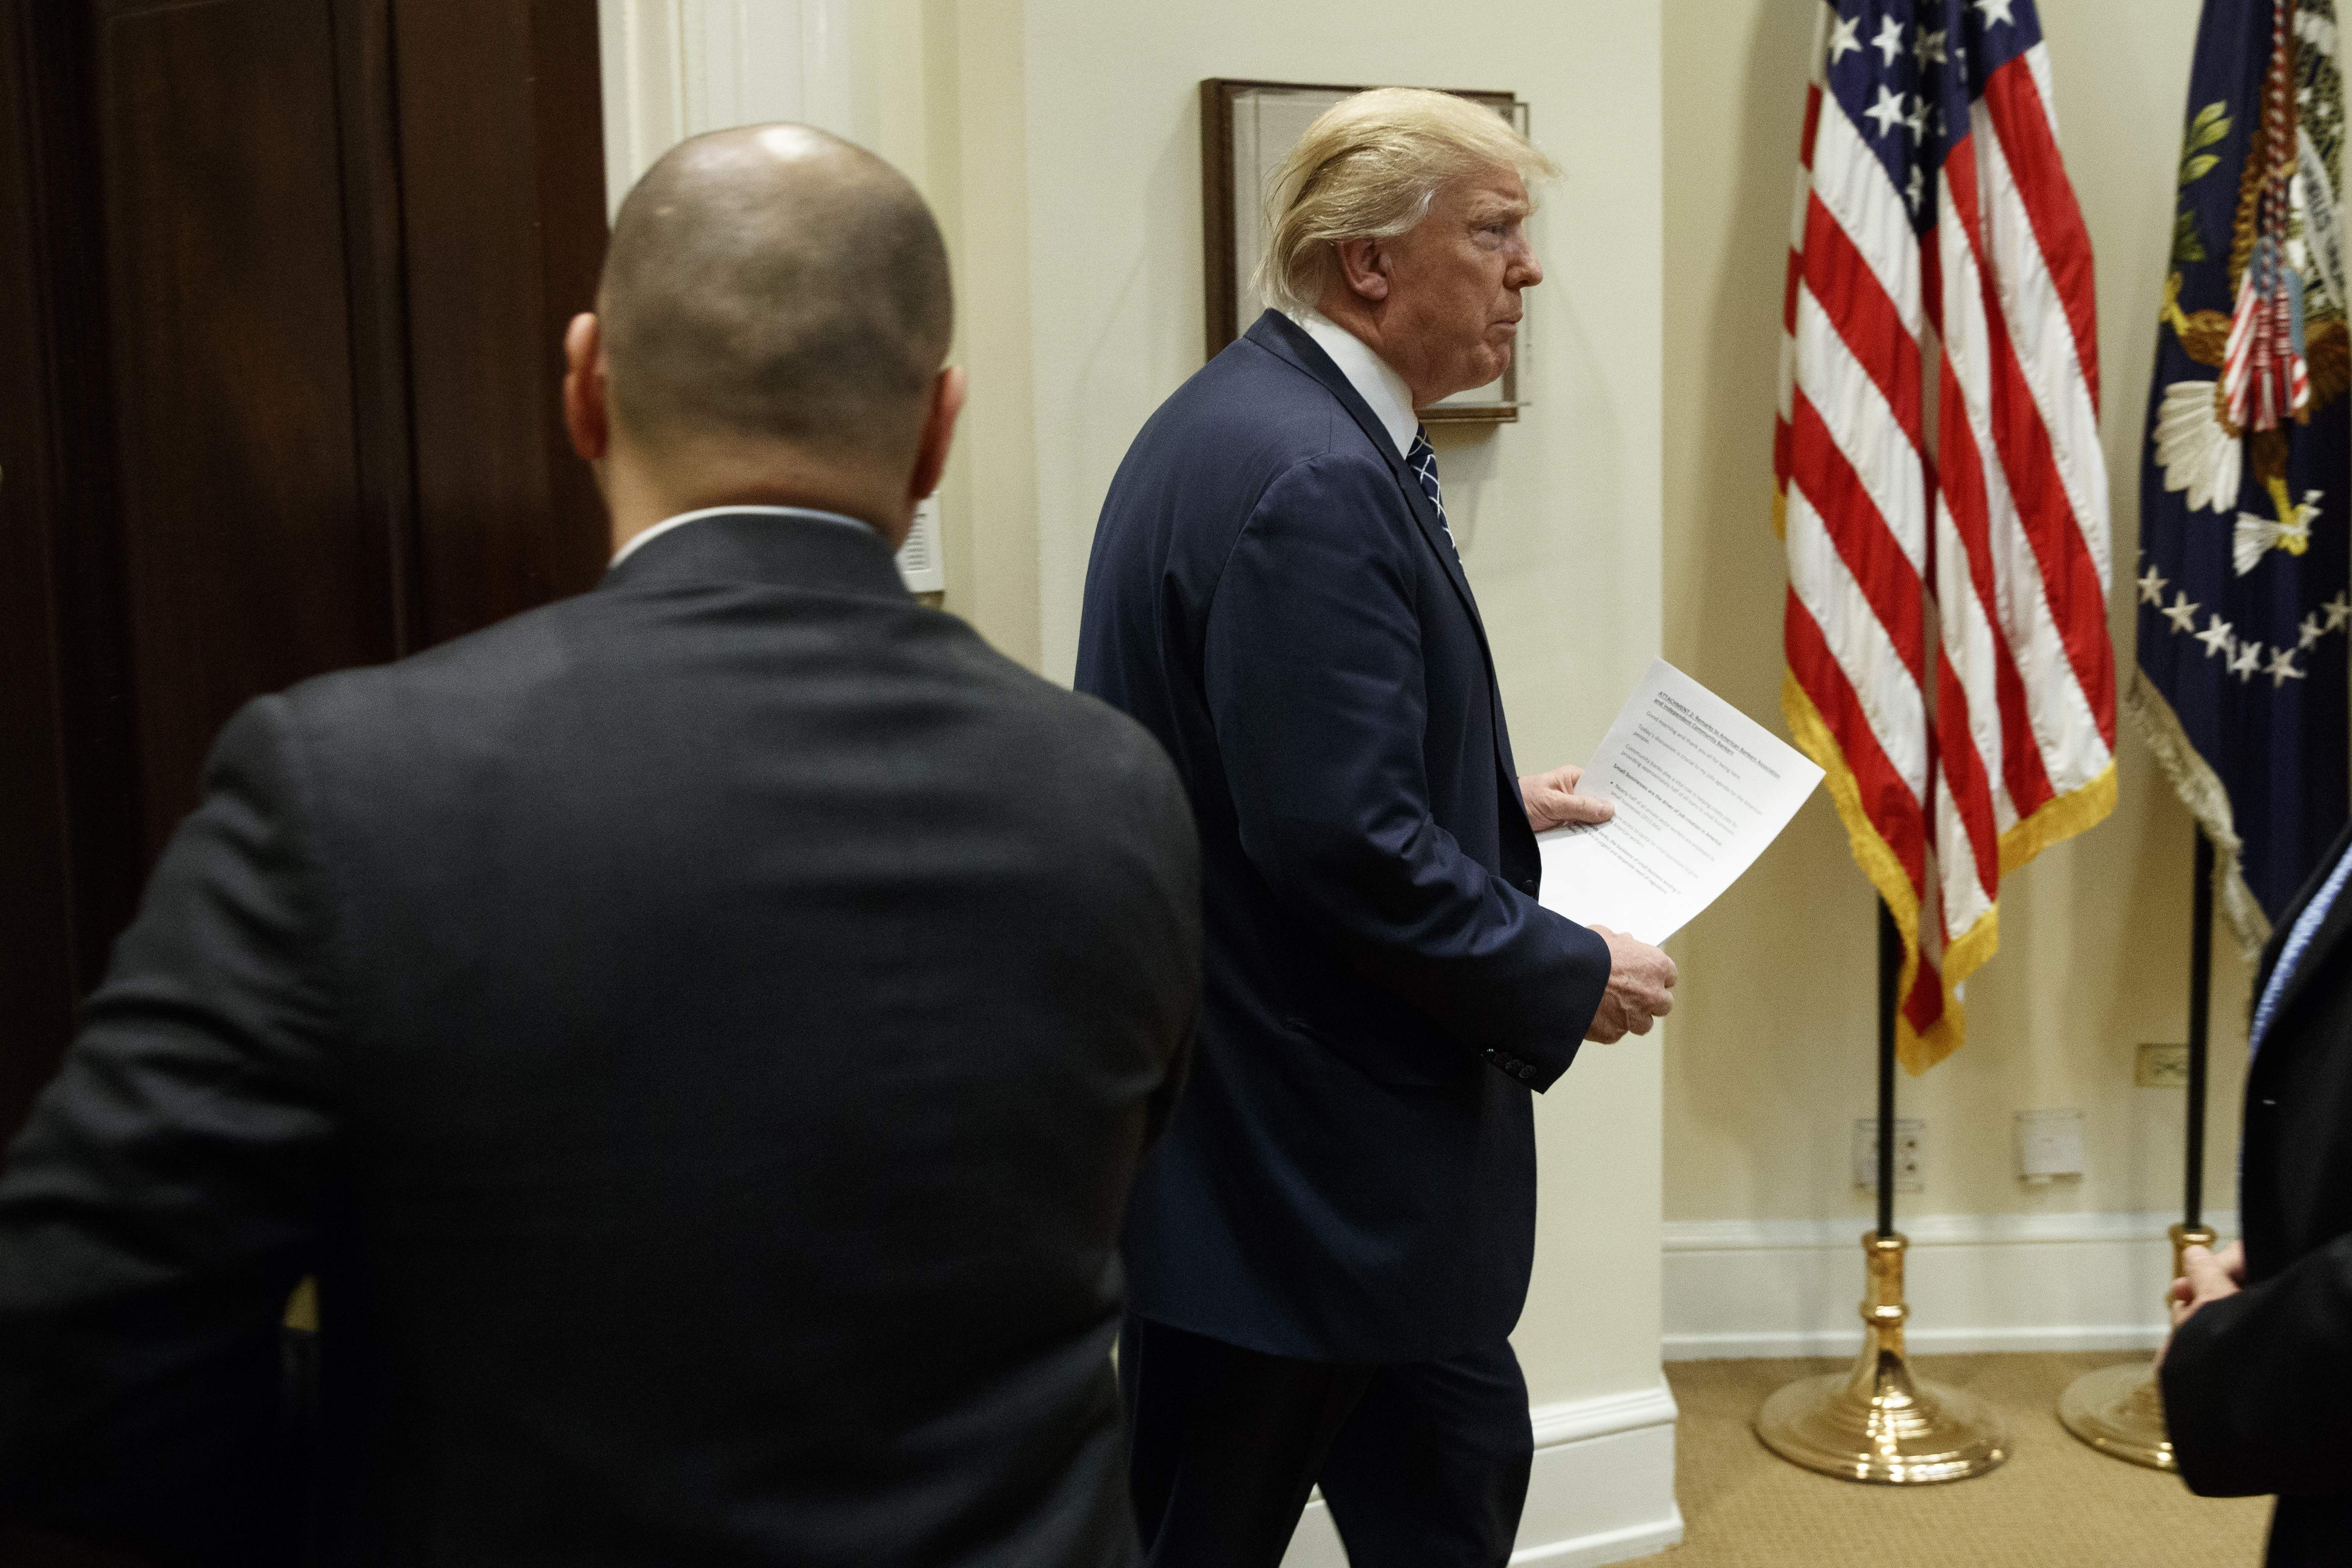 DAY 49 - In this March 9, 2017, file photo, President Donald Trump arrives in the Roosevelt Room of the White House in Washington, for a meeting with leaders from small community banks. (AP Photo/Evan Vucci, File)